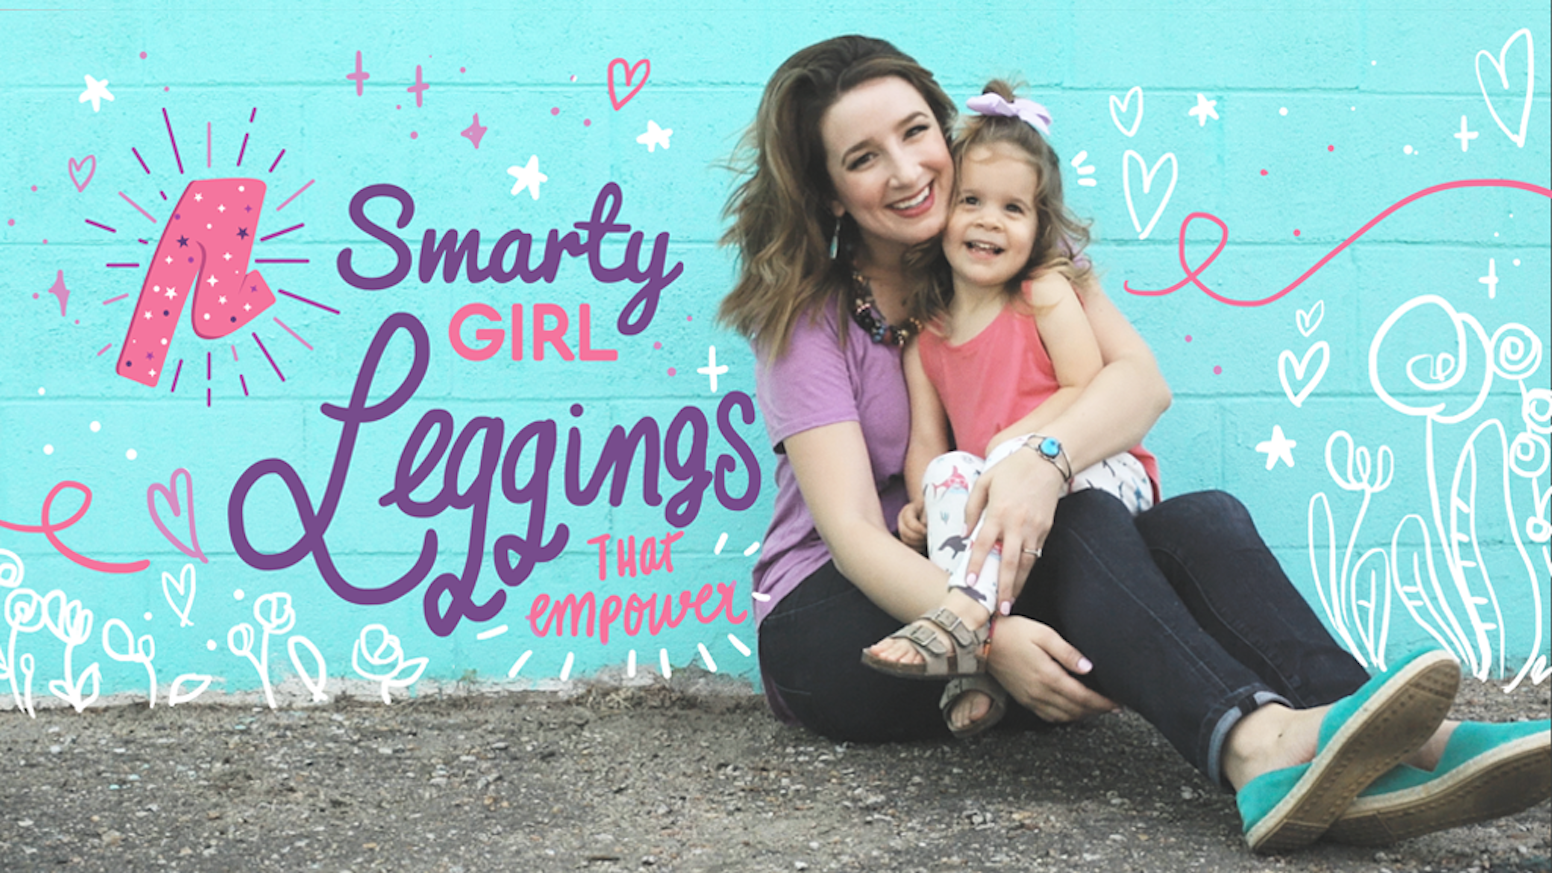 Smarty Girl's newest collection of clever clothing encourages curiosity. Because our daughters deserve more than hearts + flowers!